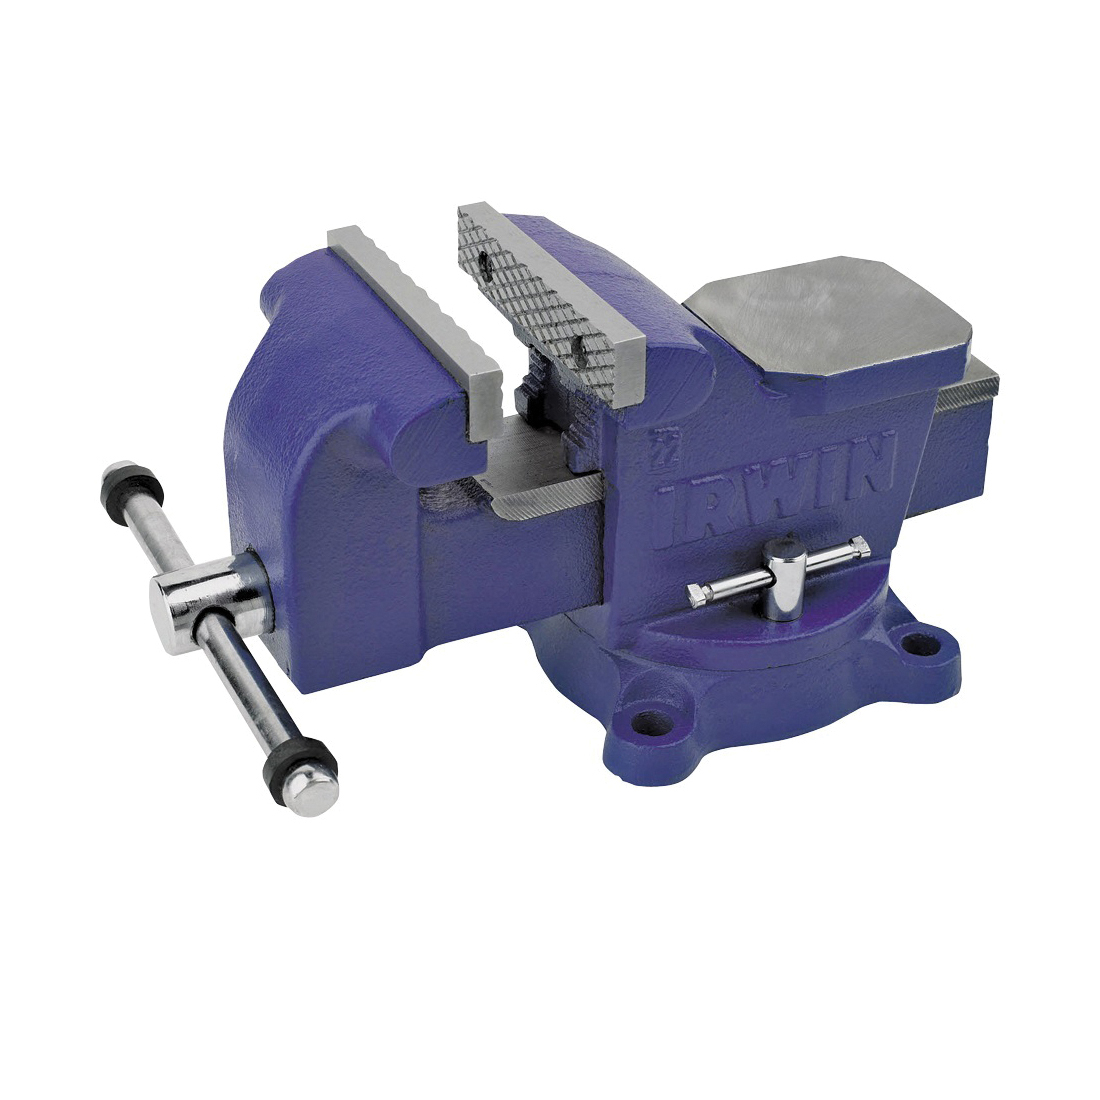 Picture of IRWIN 226304ZR Workshop Vise, 4-1/4 in Jaw Opening, 4 in W Jaw, 2.2 in D Throat, Steel